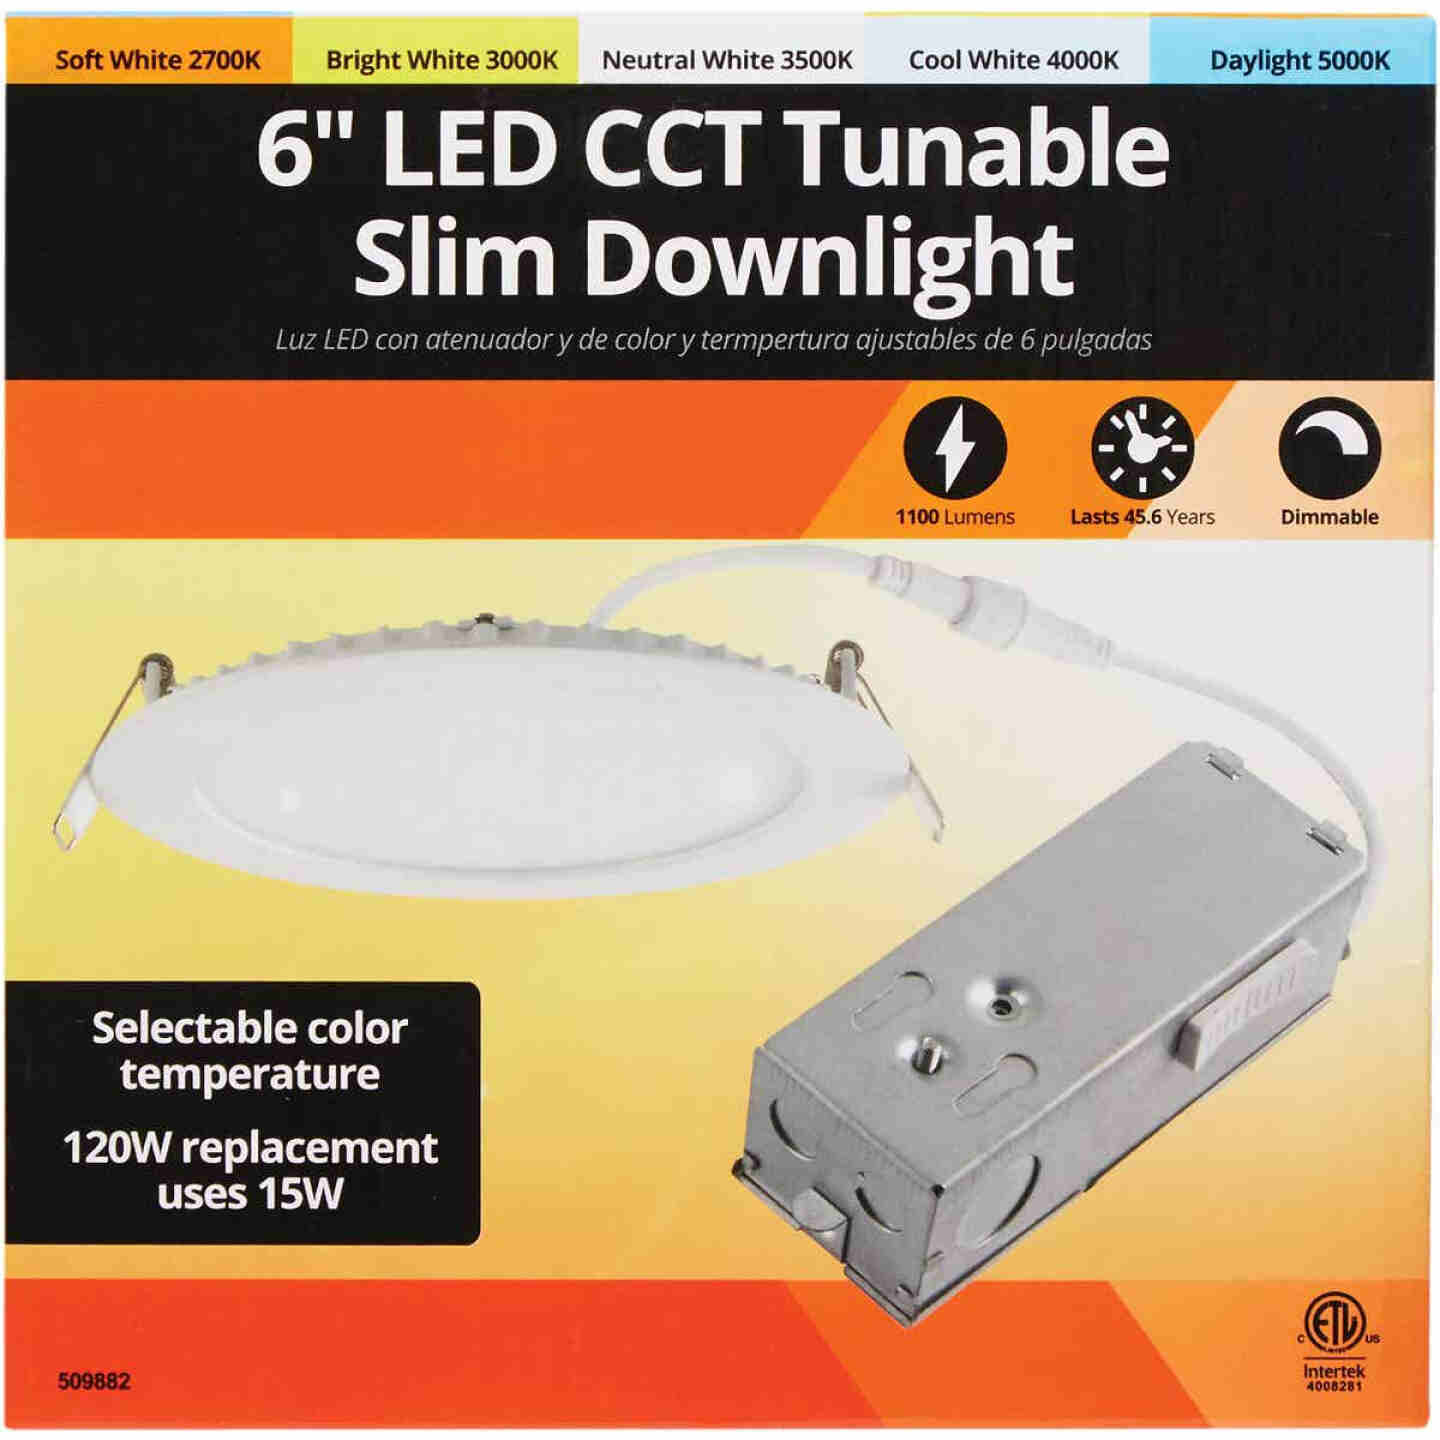 6 In. New Construction IC Rated White Tunable Slim LED CCT Downlight Image 2